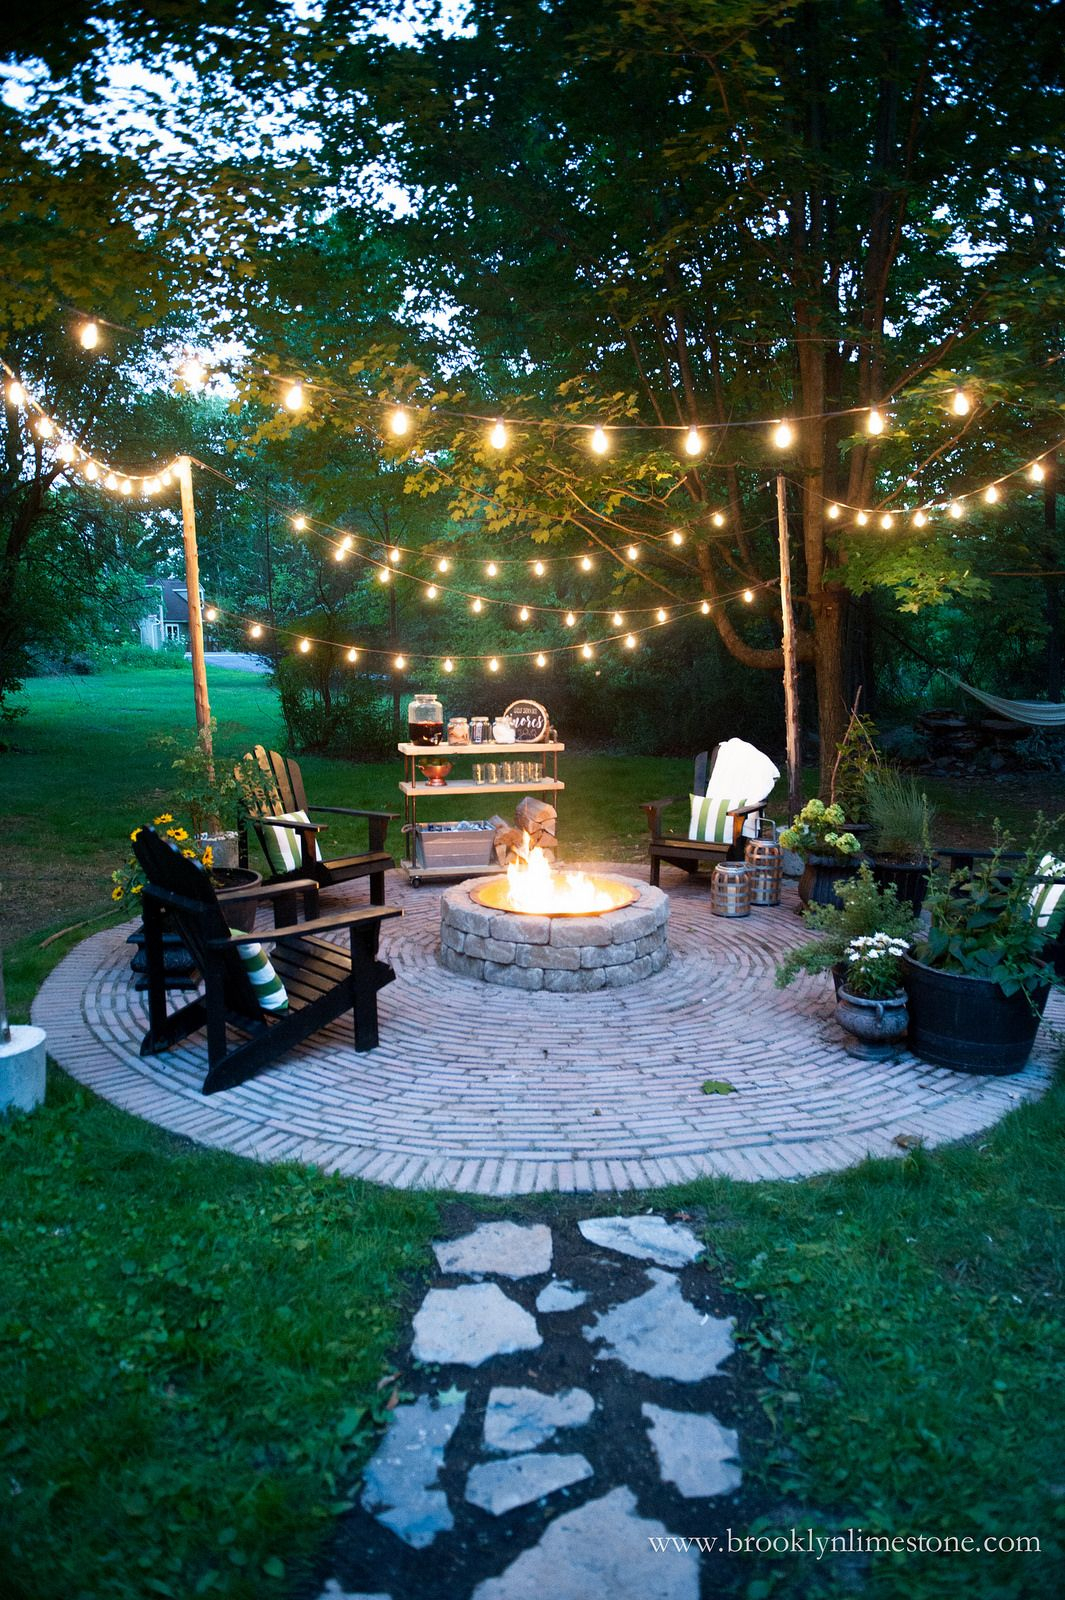 18 Fire Pit Ideas For Your Backyard Home Decor Ideas Backyard regarding 10 Awesome Tricks of How to Build Easy Backyard Fire Pit Ideas